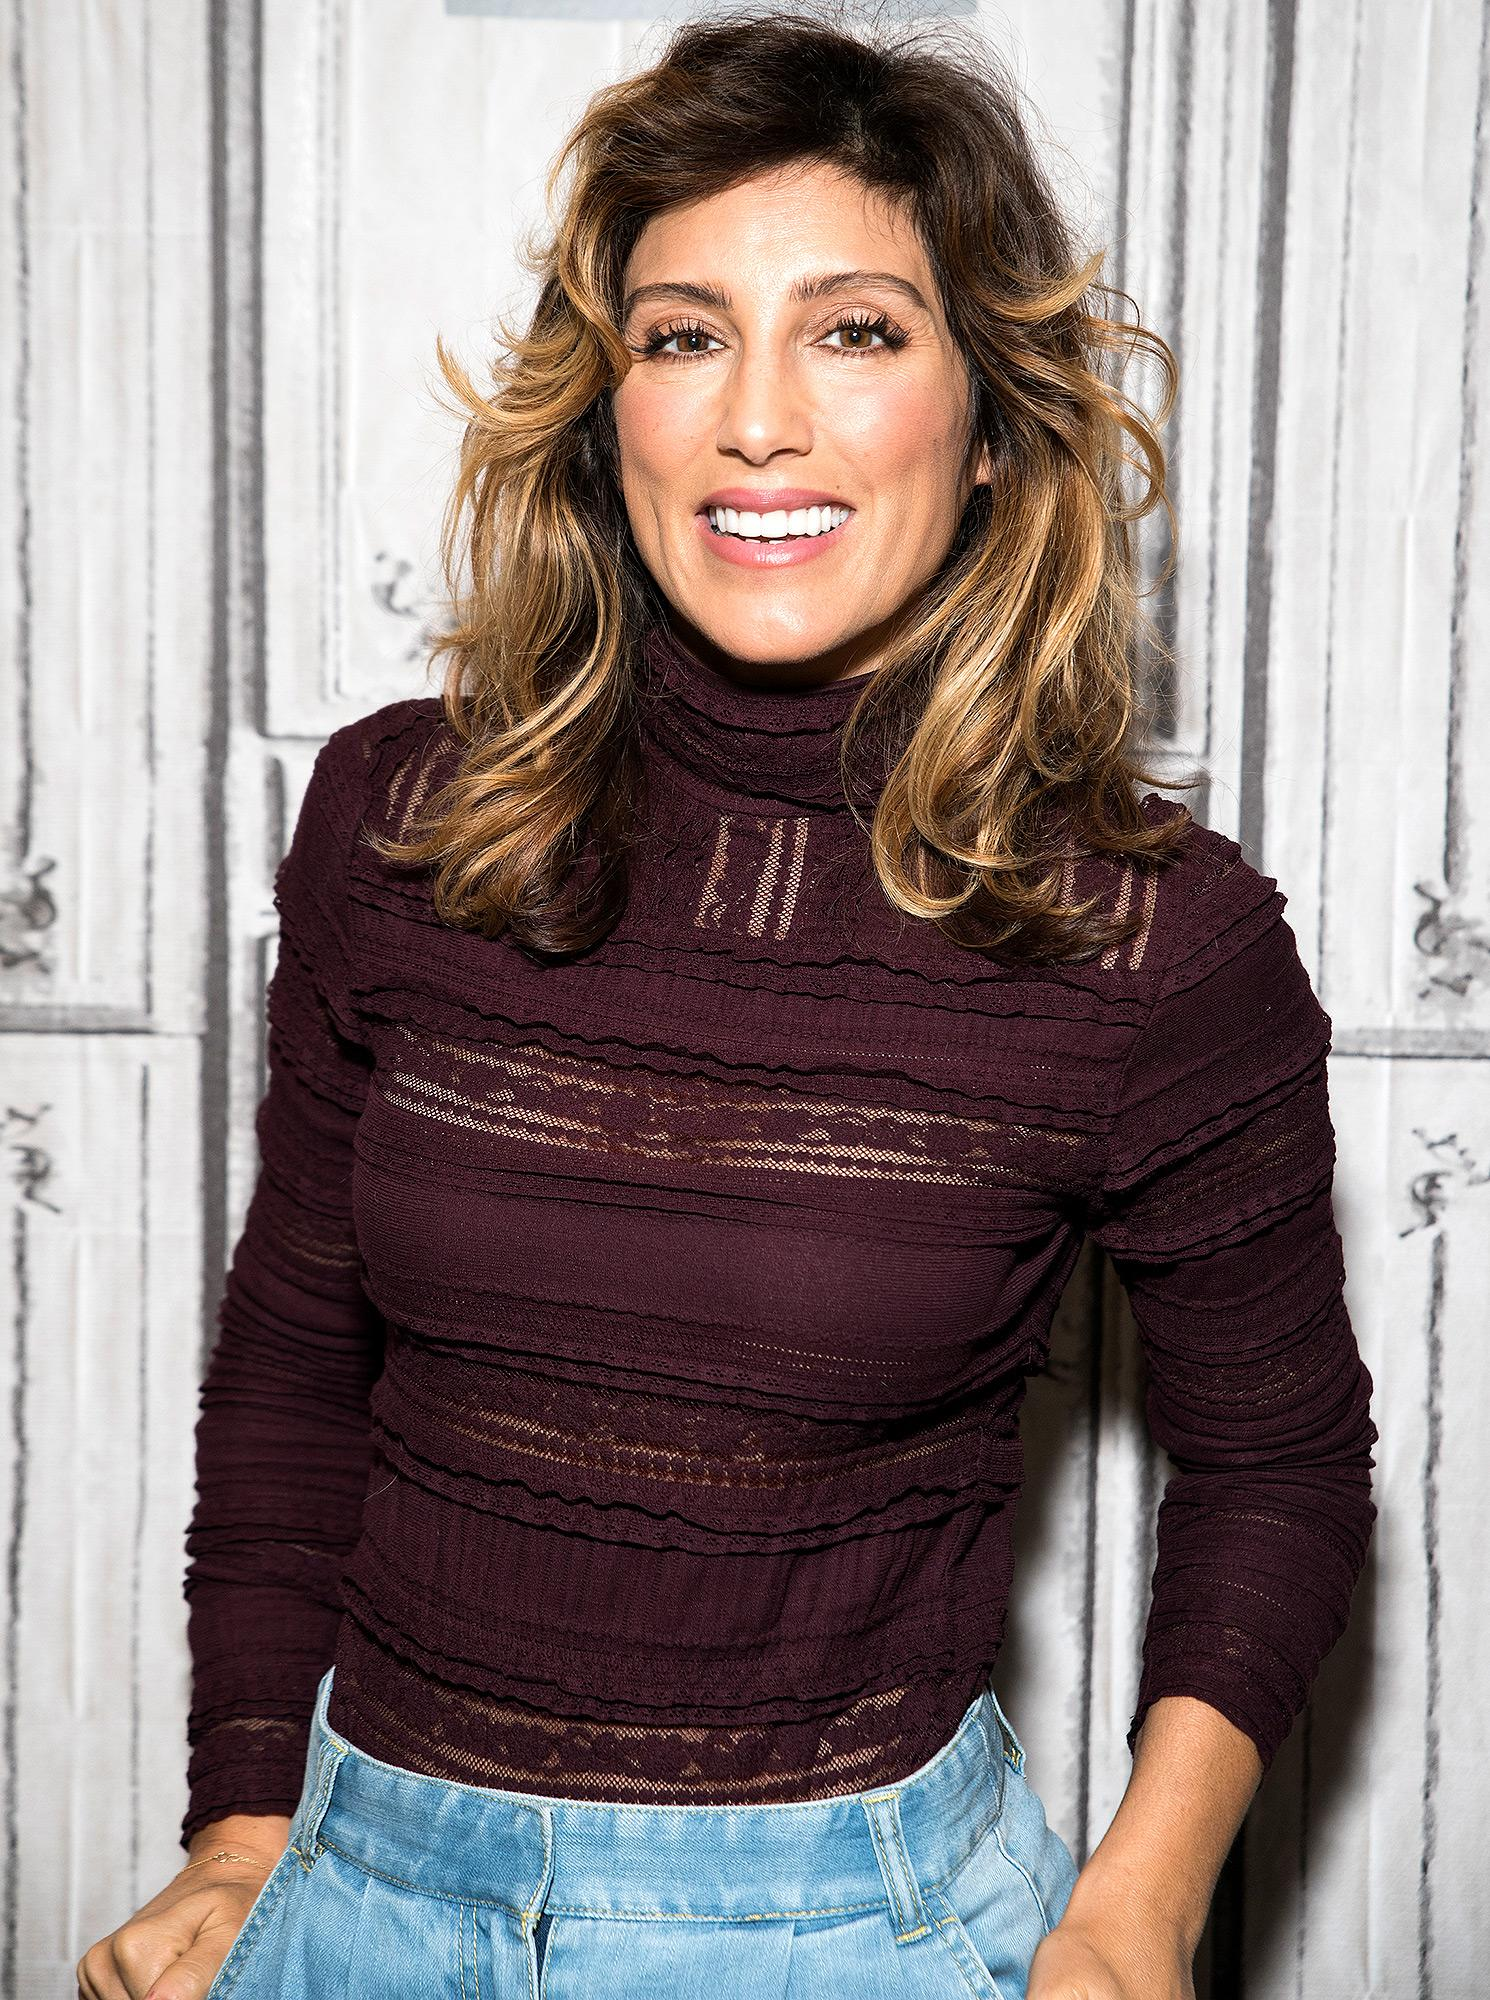 Jennifer Esposito Is Back in the Spotlight: Here's What She's Been Up To